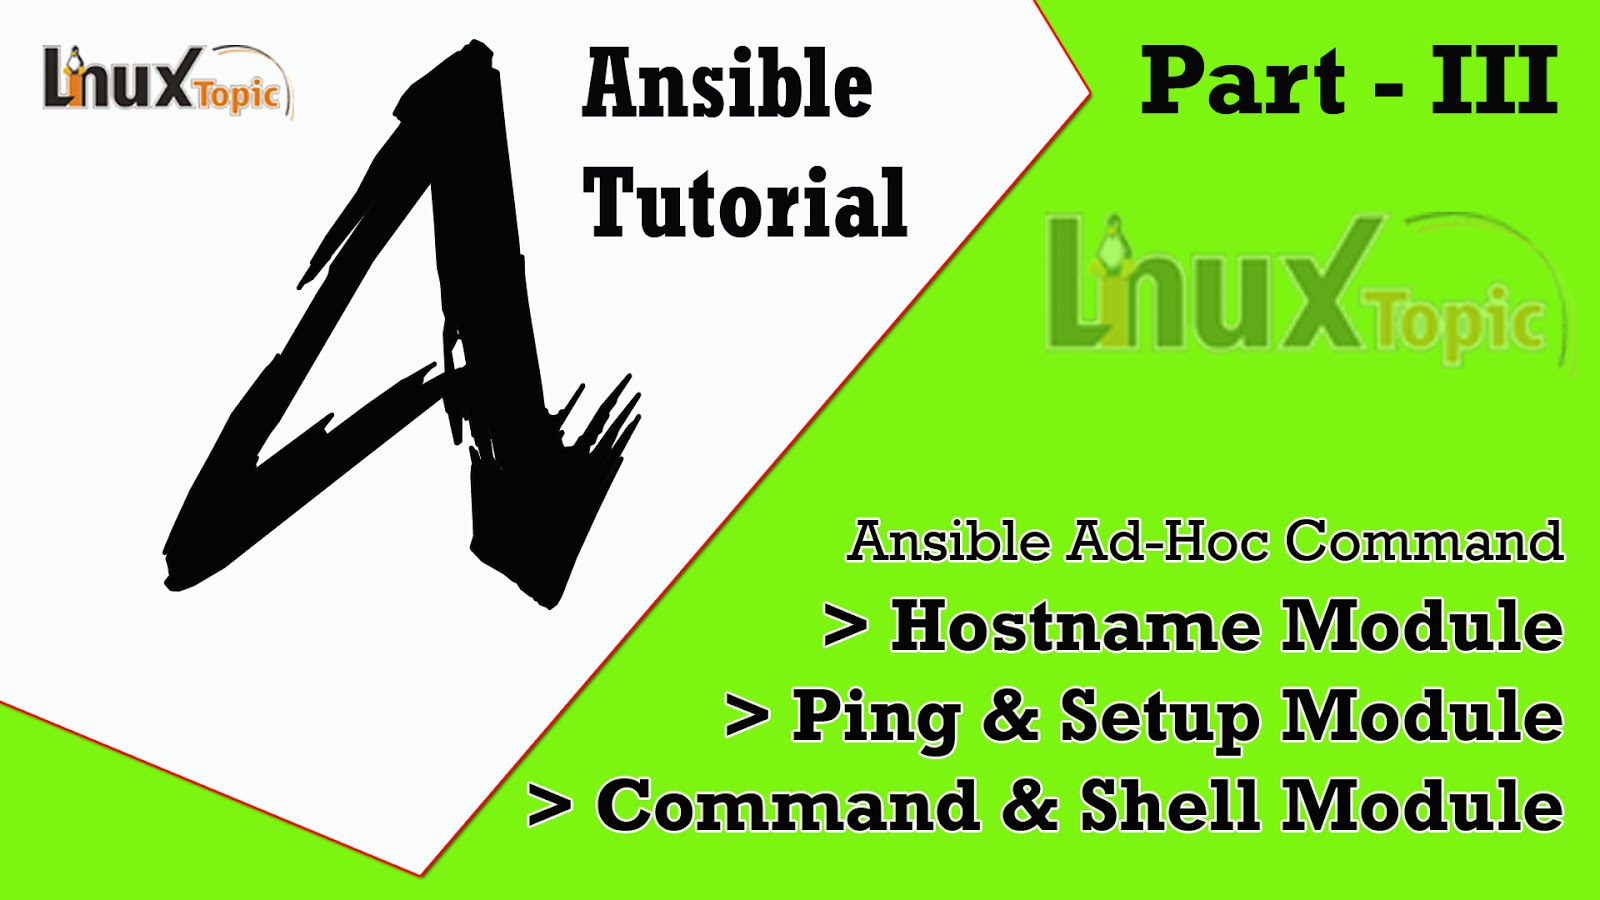 Ansible Tutorial - Ansible Modules Ping Setup Command Shell